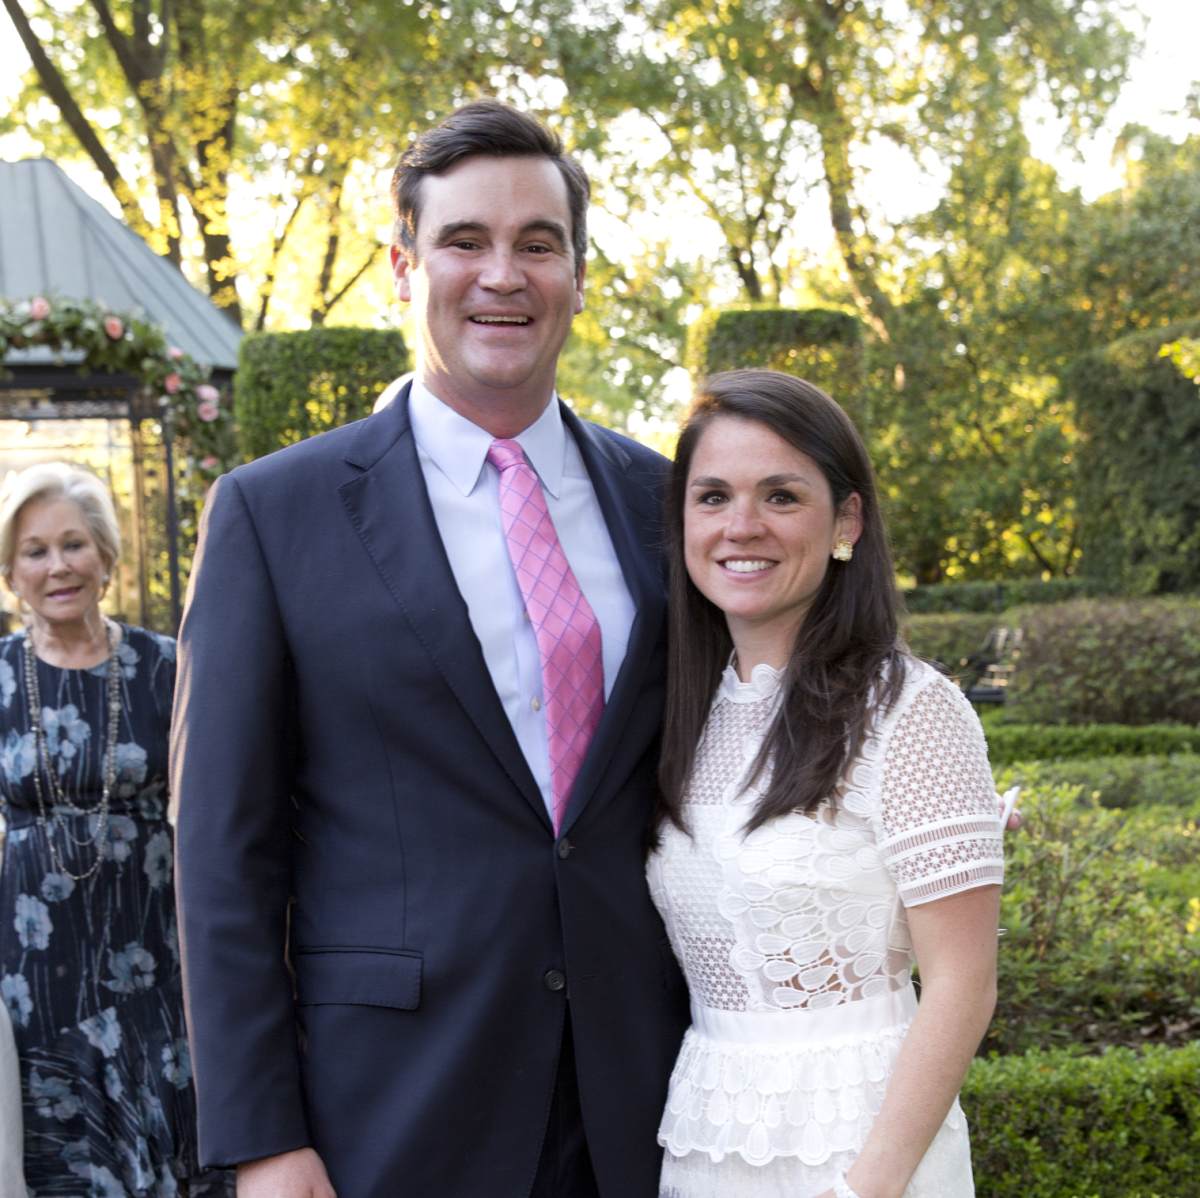 Bayou Bend Garden Party, April 2016, Matthew Goossen, Lacey Goossen